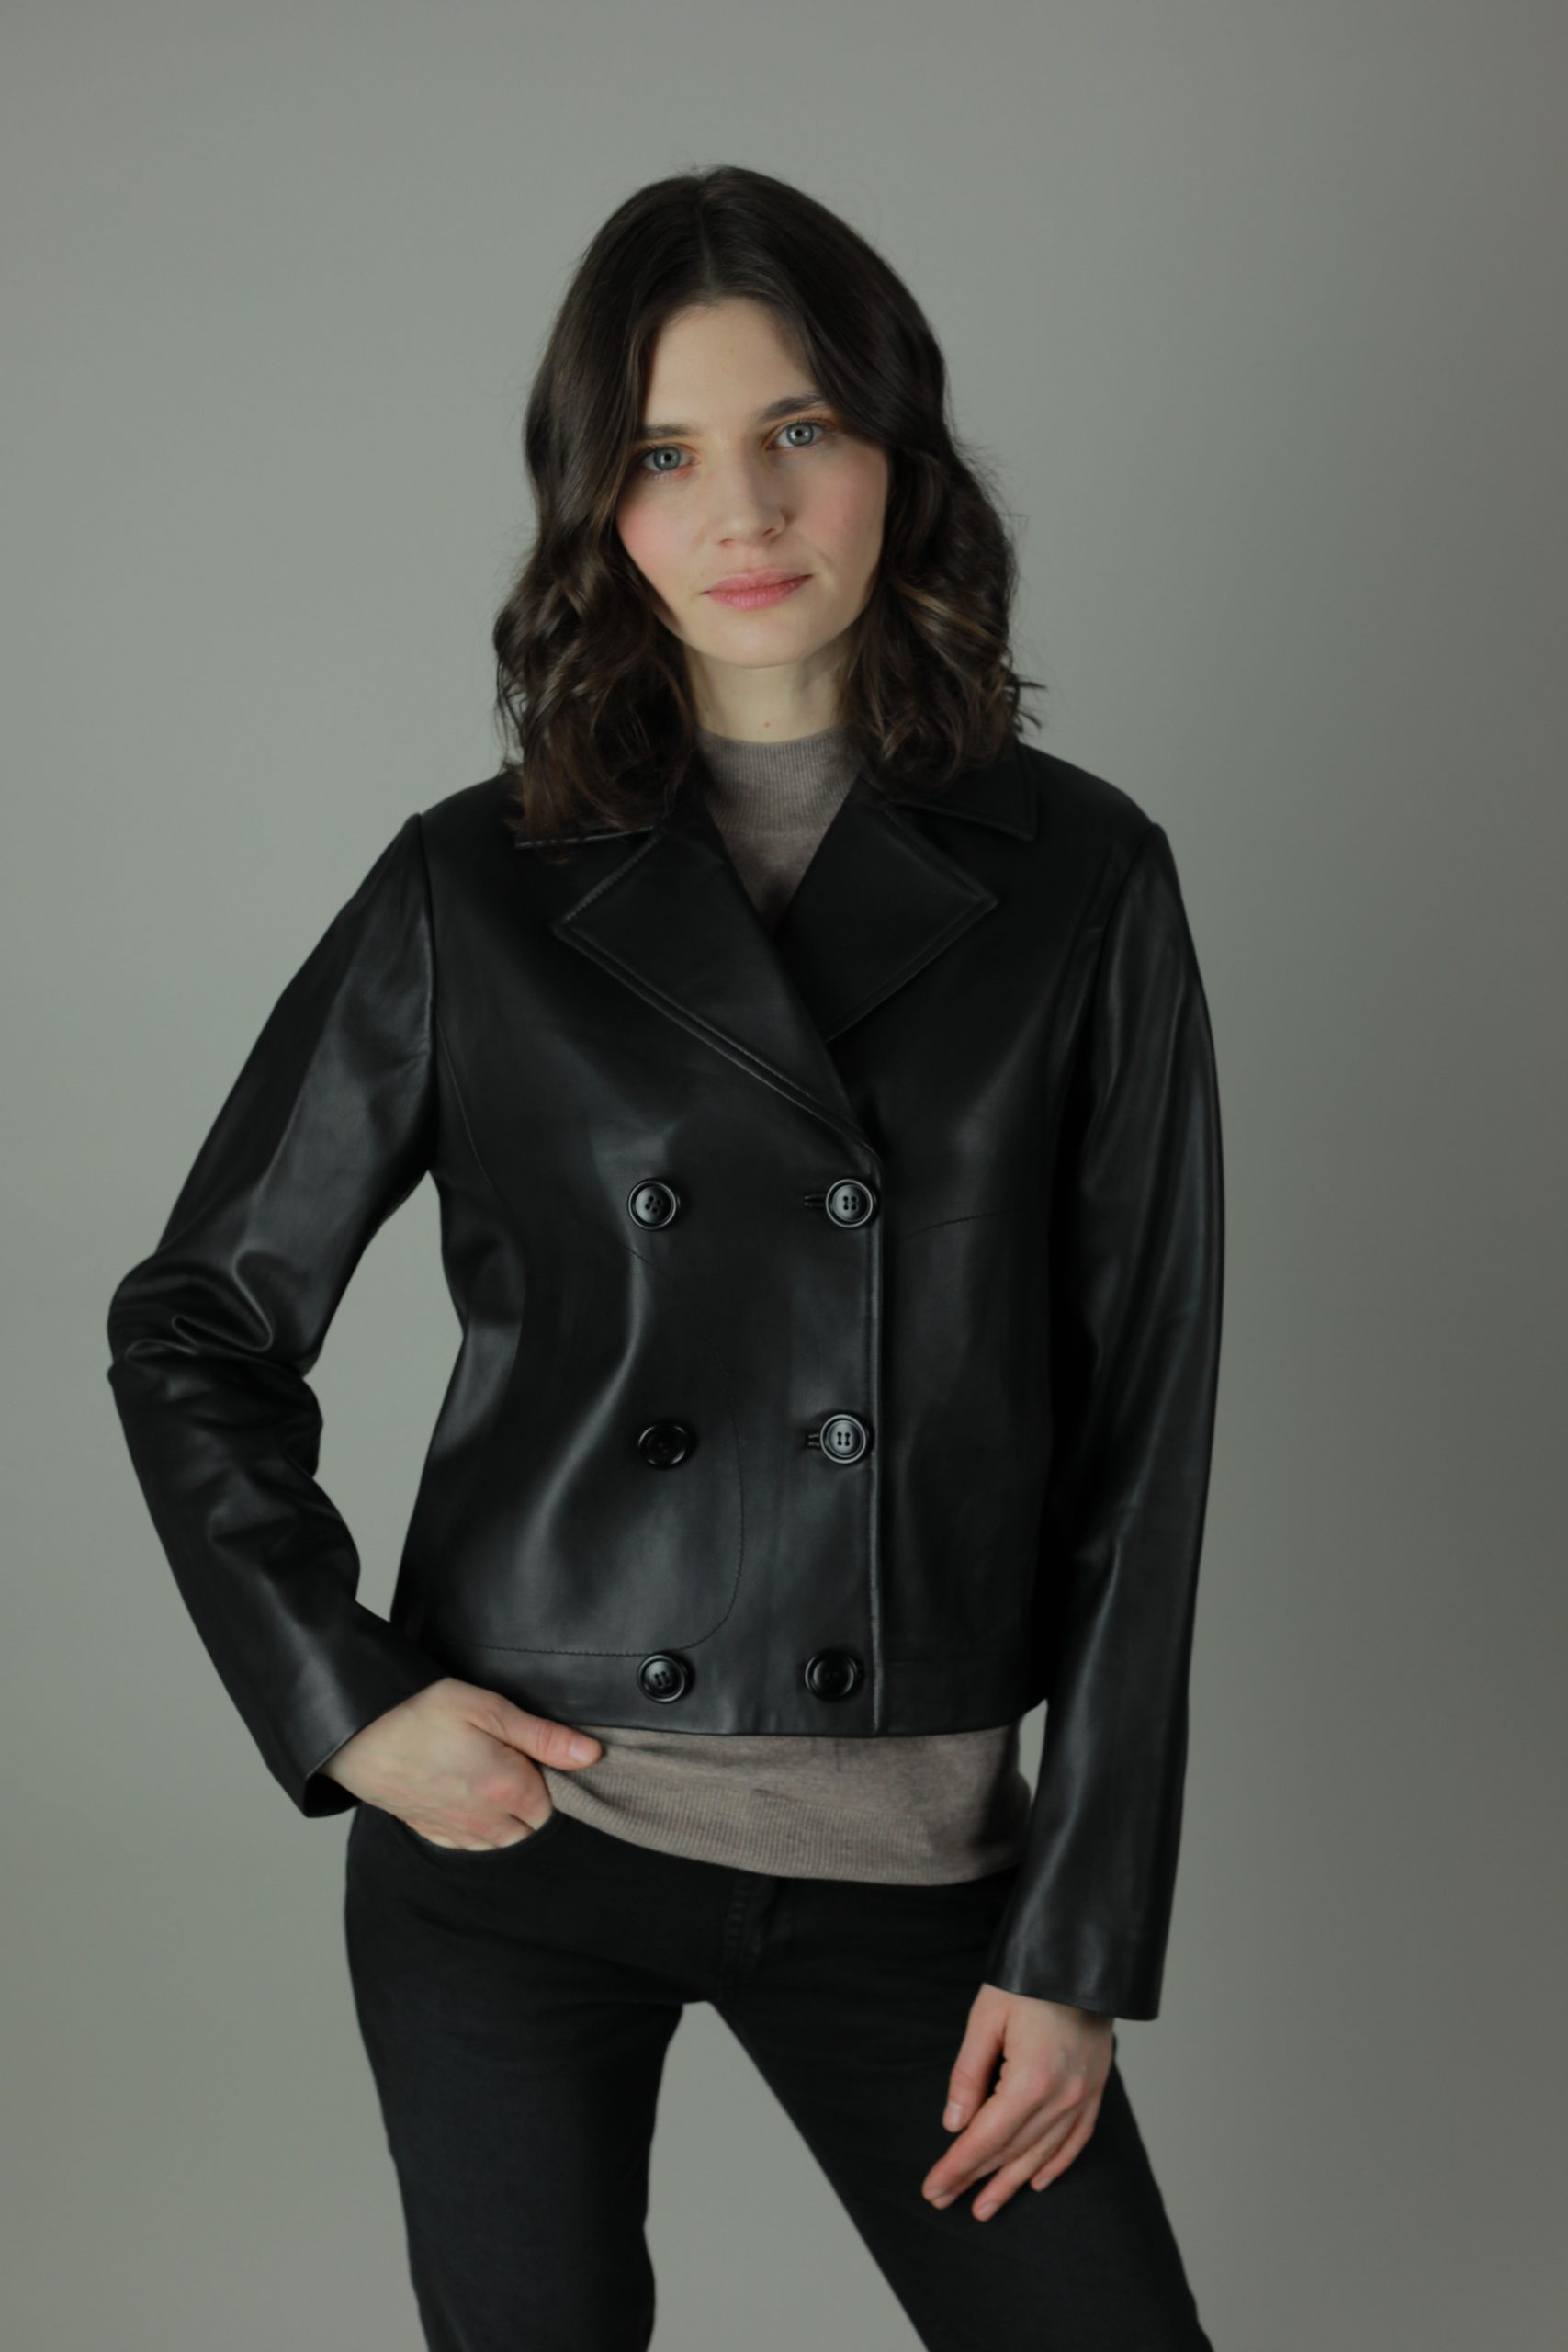 Reminisce. The Cait is the ultimate old school biker jacket to pair with jeans and a T or a dress and heels. Expertly crafted from smooth leather, The Cait has a minimal design and features for a fresh and understated look.